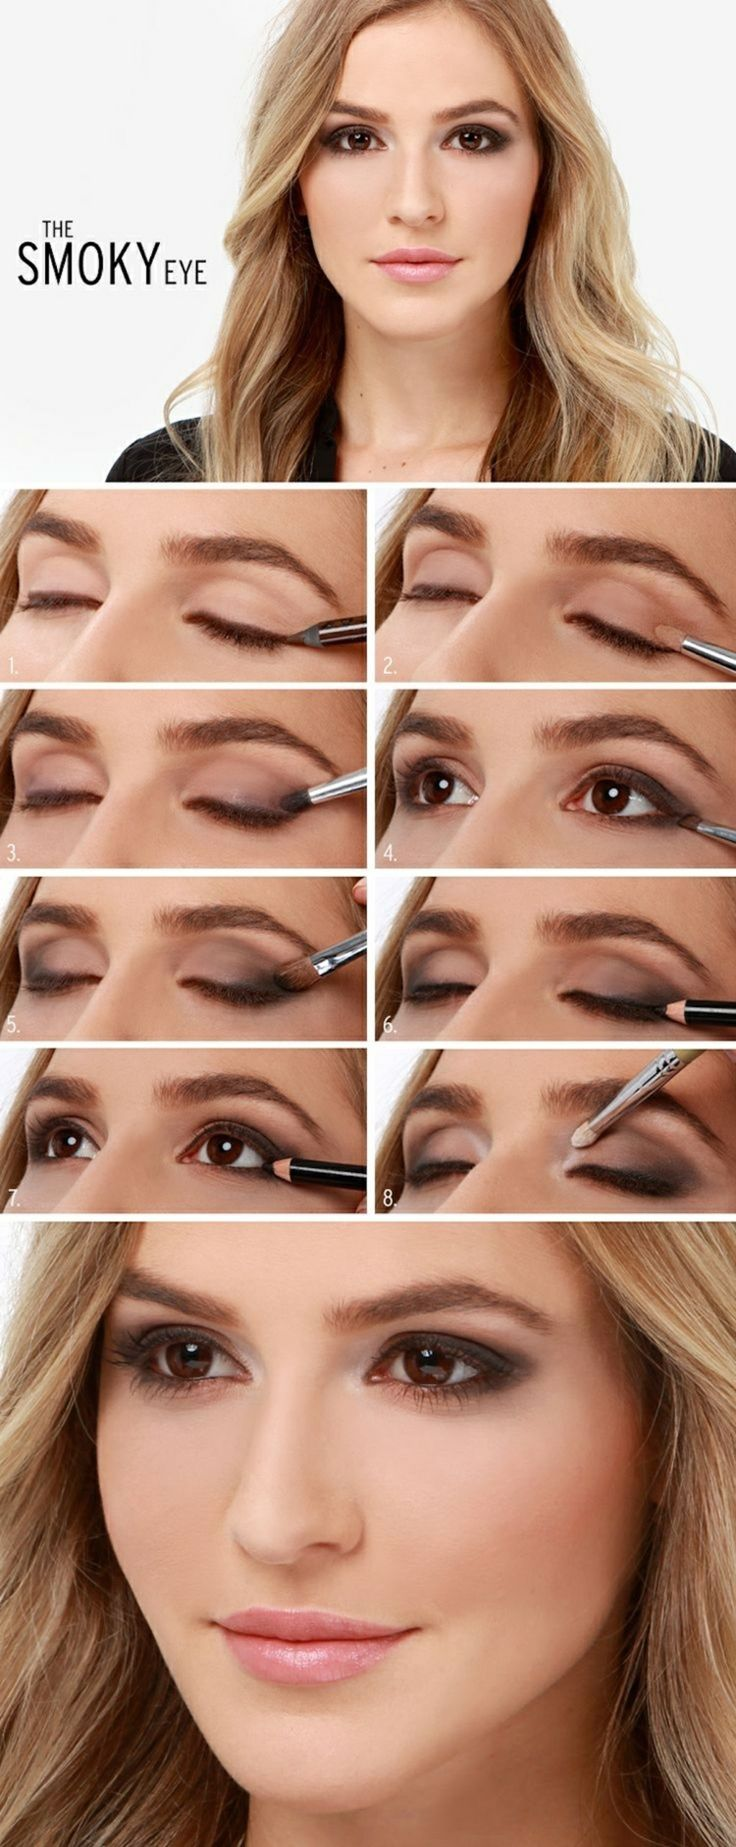 Le maquillage des yeux marron #maquillage #yeux #marron # ...